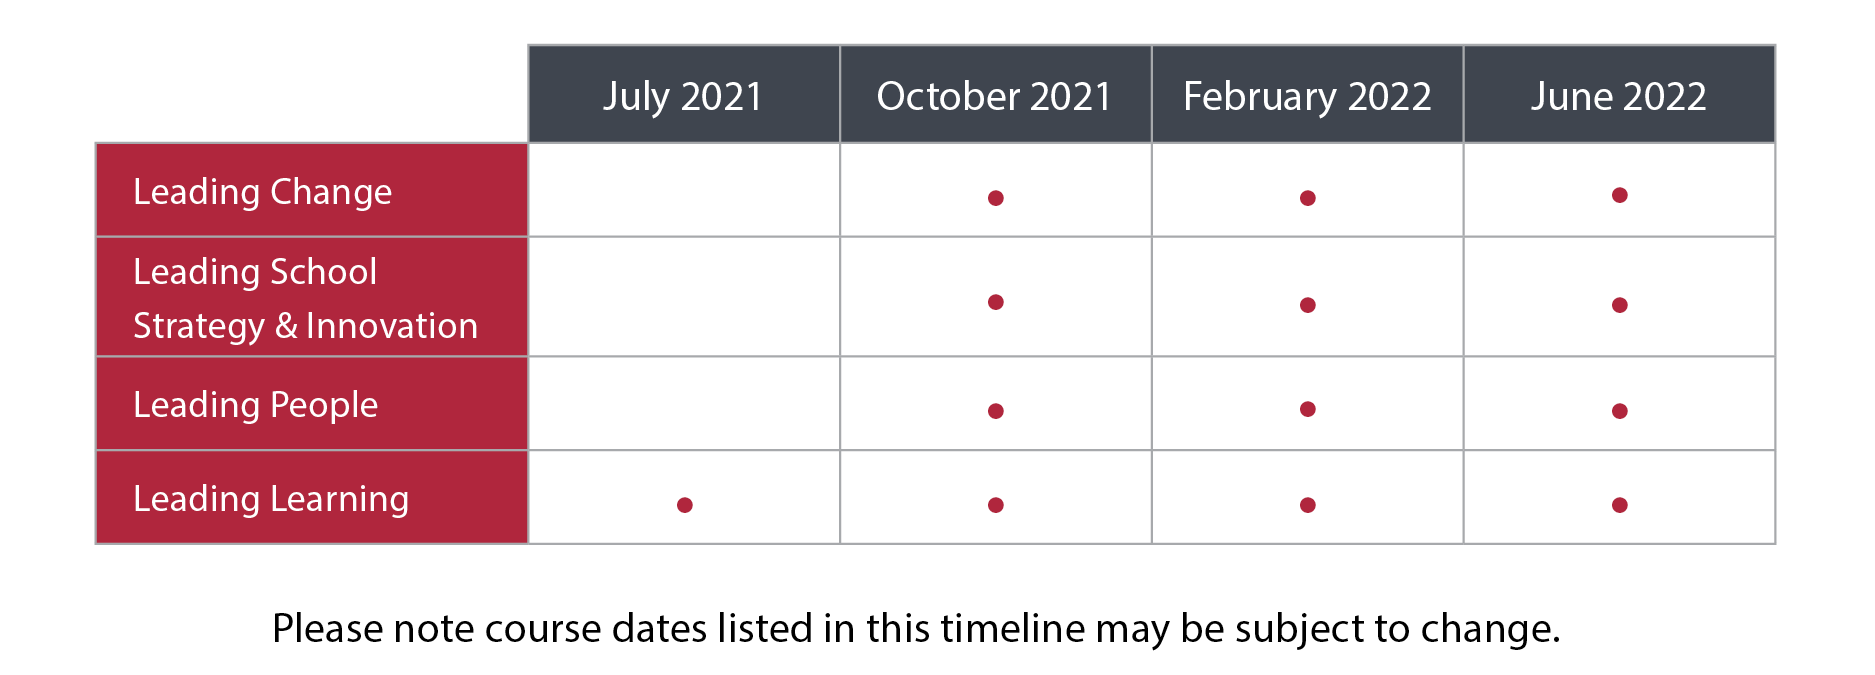 The course timeline for the Certificate in School Management and Leadership (CSML). Courses will be available in July 2021, October 2021, February 2022, and June 2022.